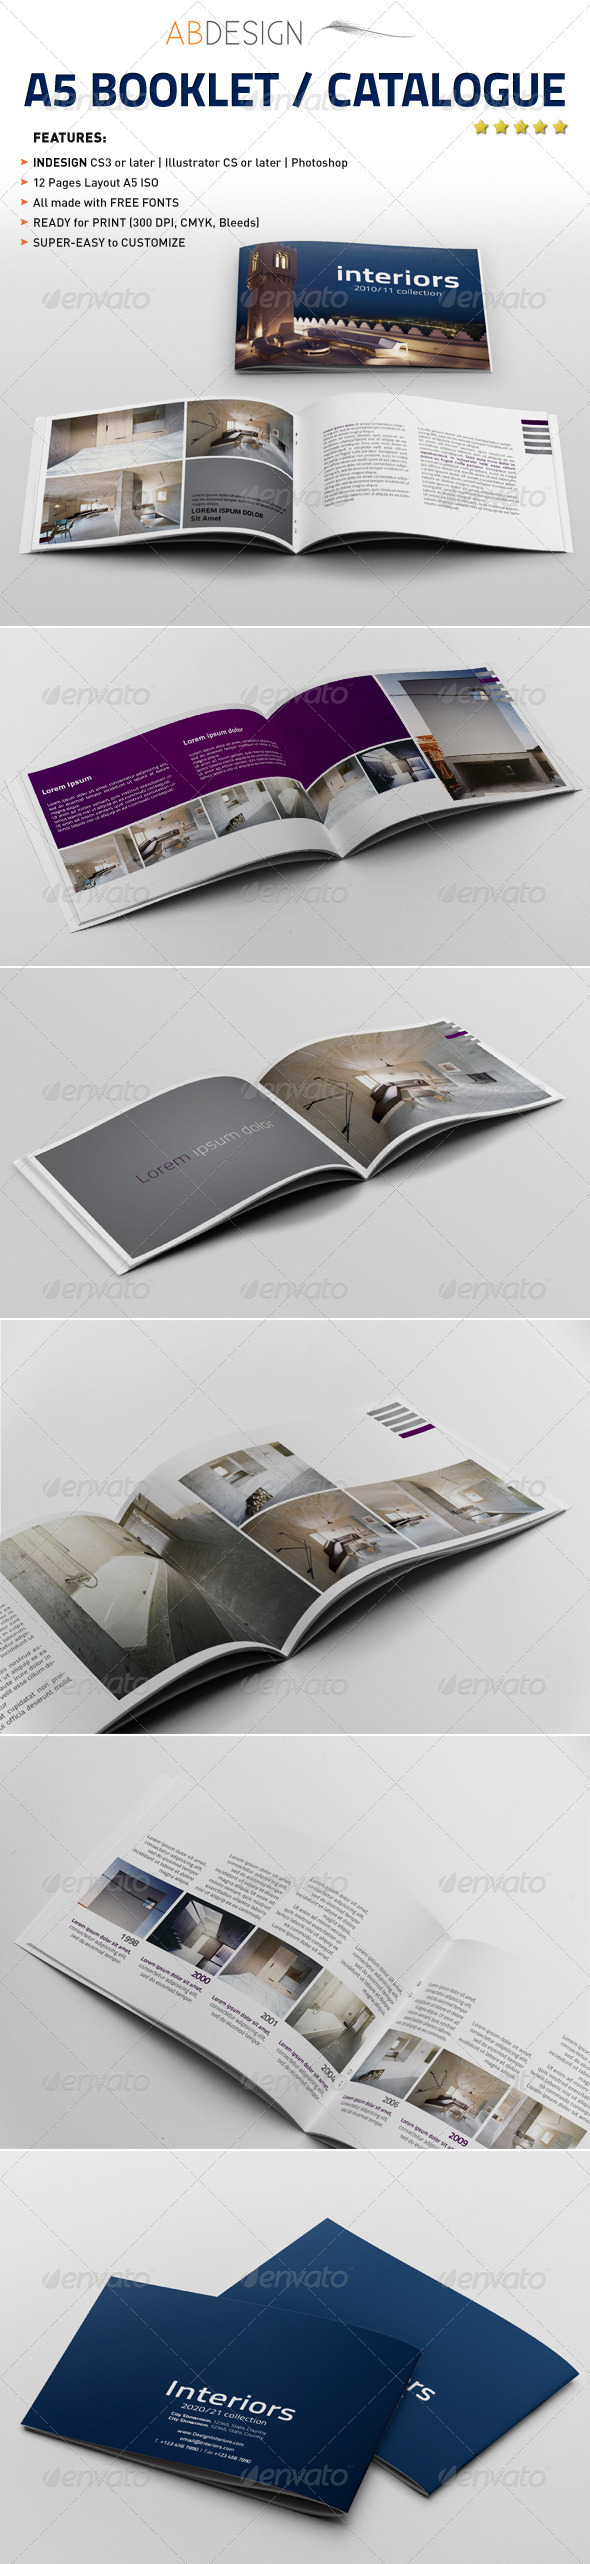 A Booklet Catalogue Brochures Corporate Brochure And - Brochure booklet templates